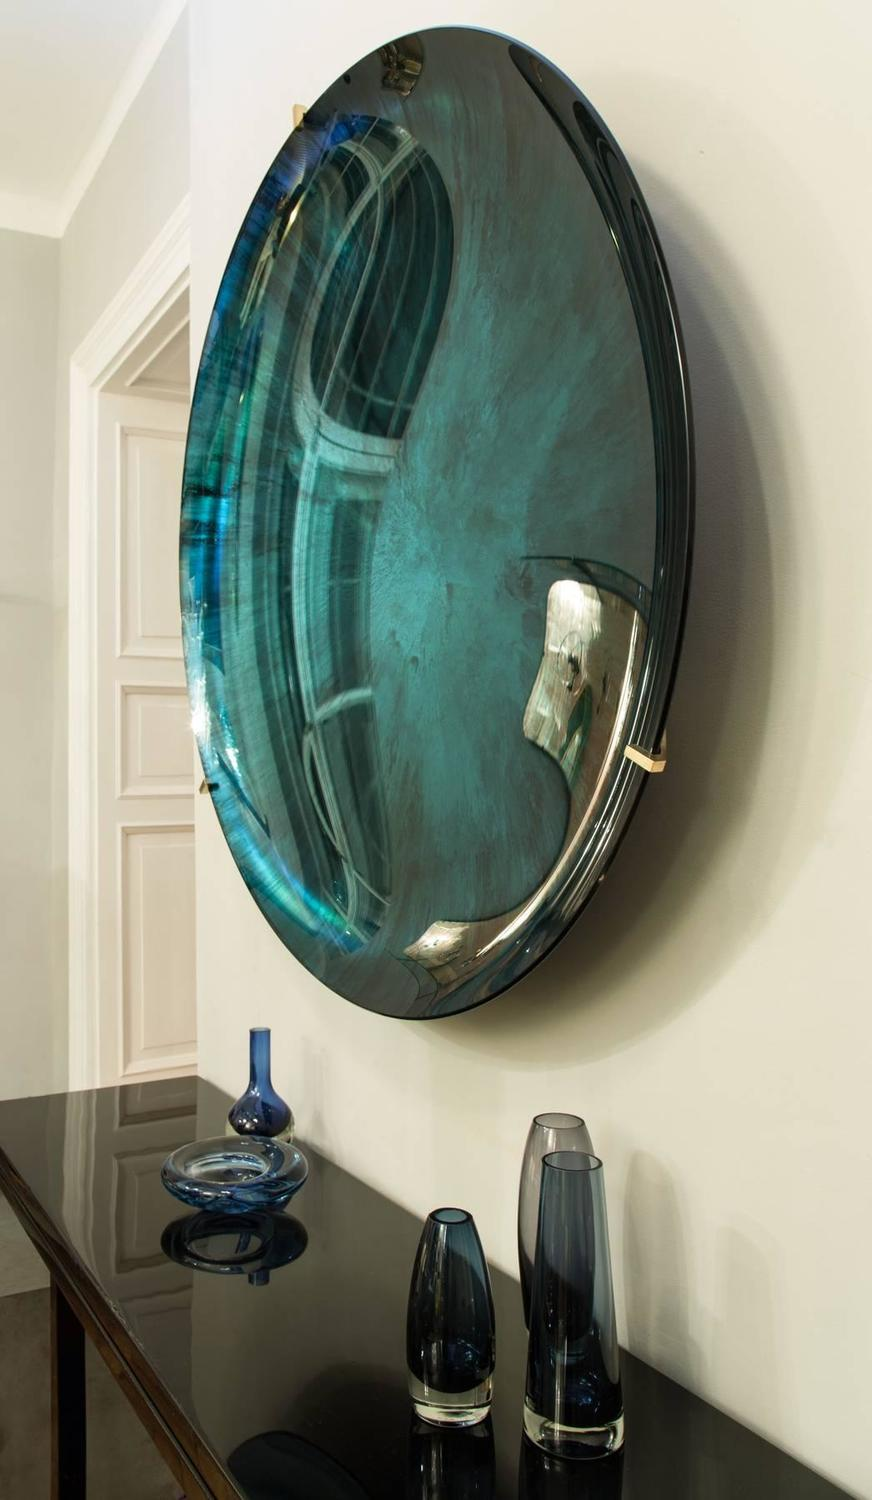 Concave mirror by christophe gaignon france 2015 at 1stdibs for Concave mirror